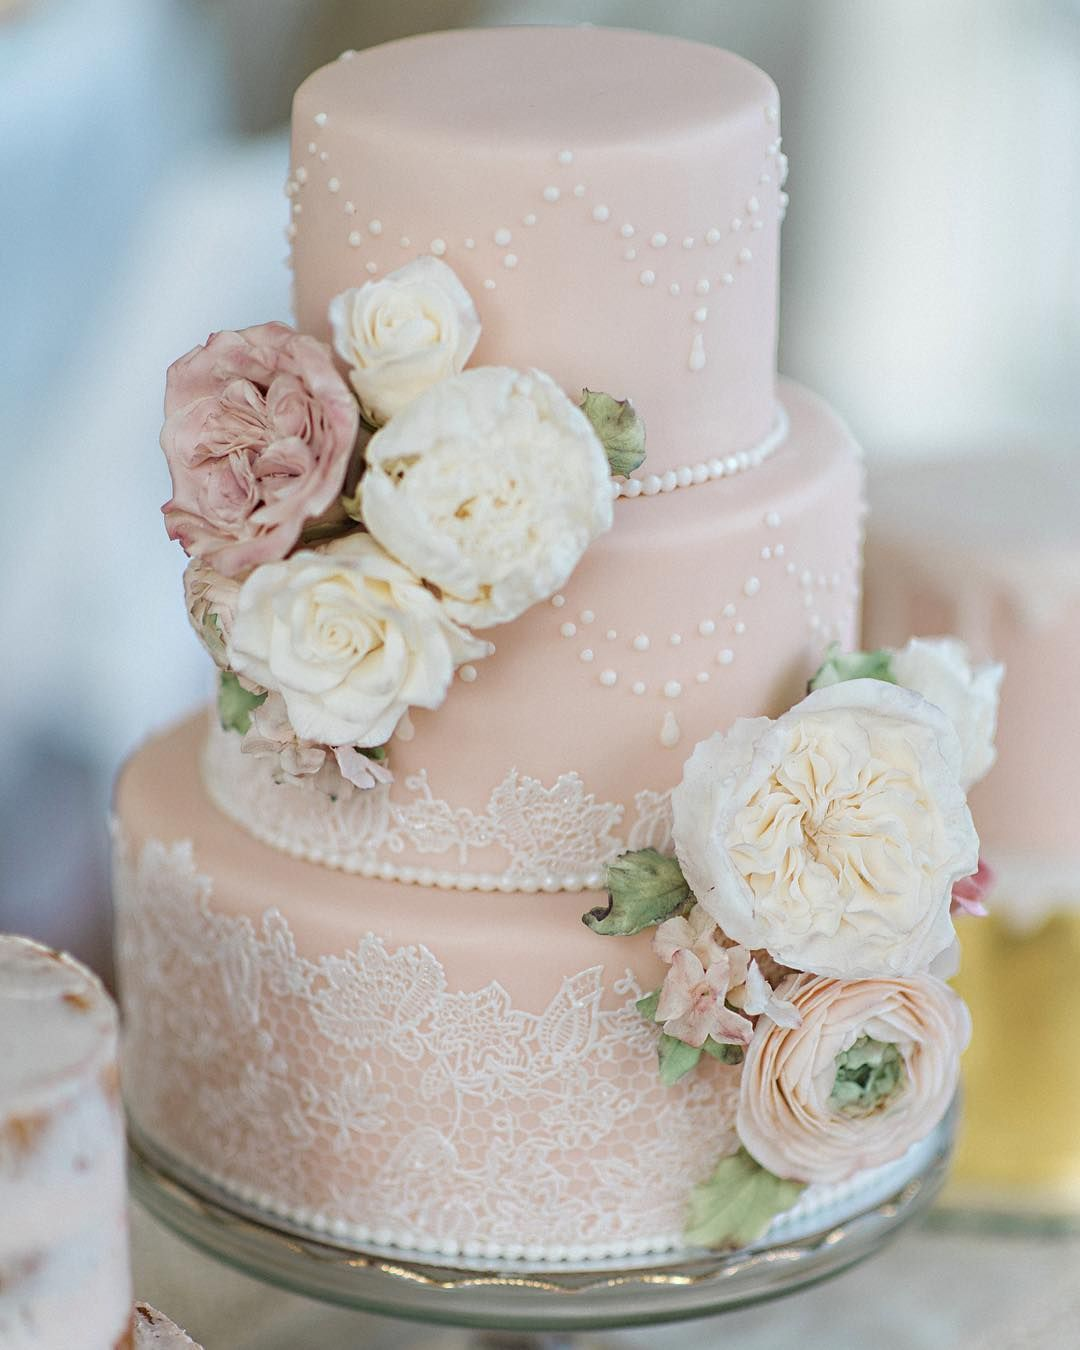 Blush Wedding Cake Weddingcake Cakephoto Wedding Weddingcakes